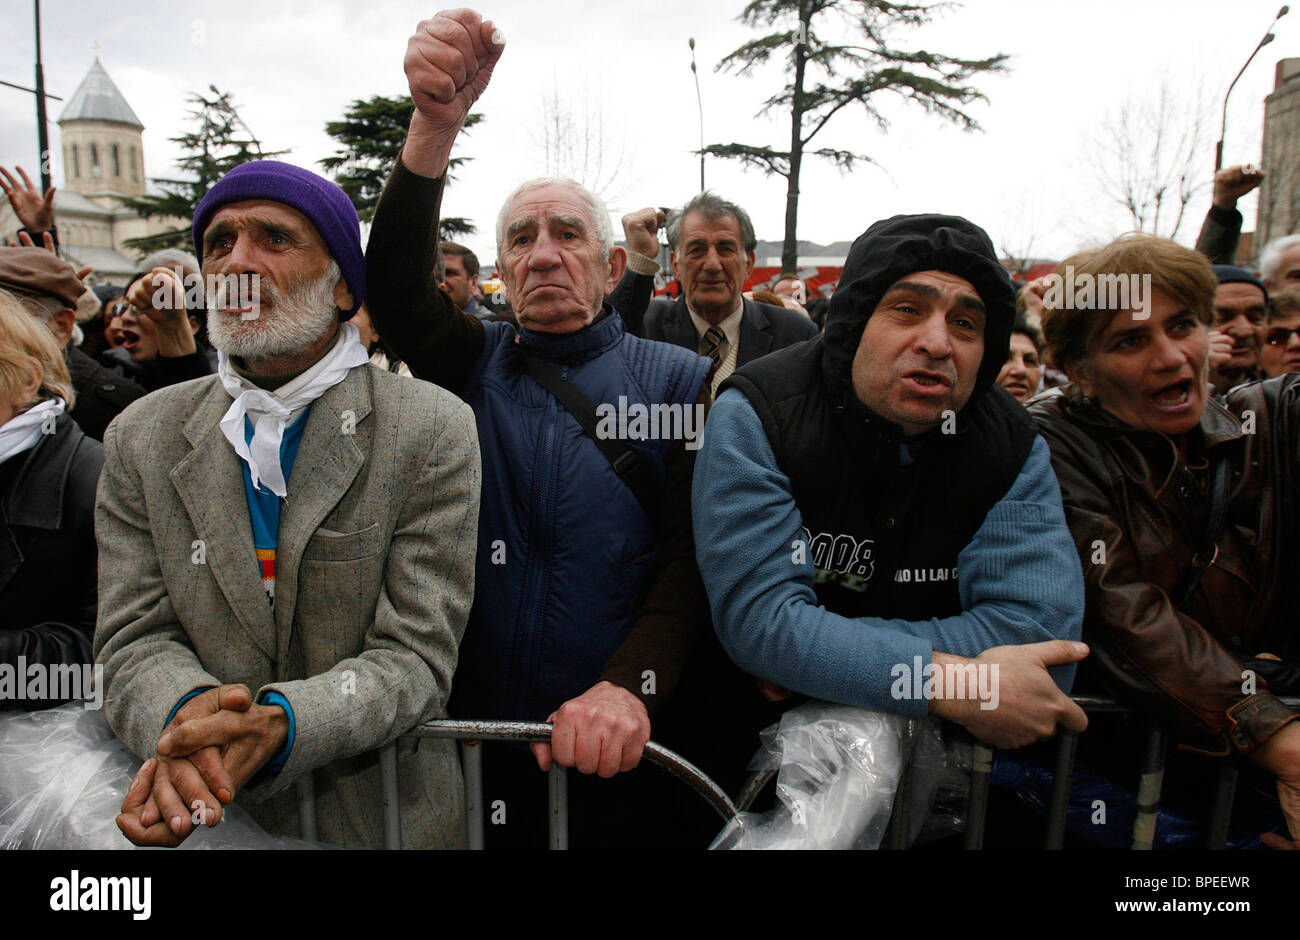 Opposition supporters protest outside Georgian Parliament - Stock Image